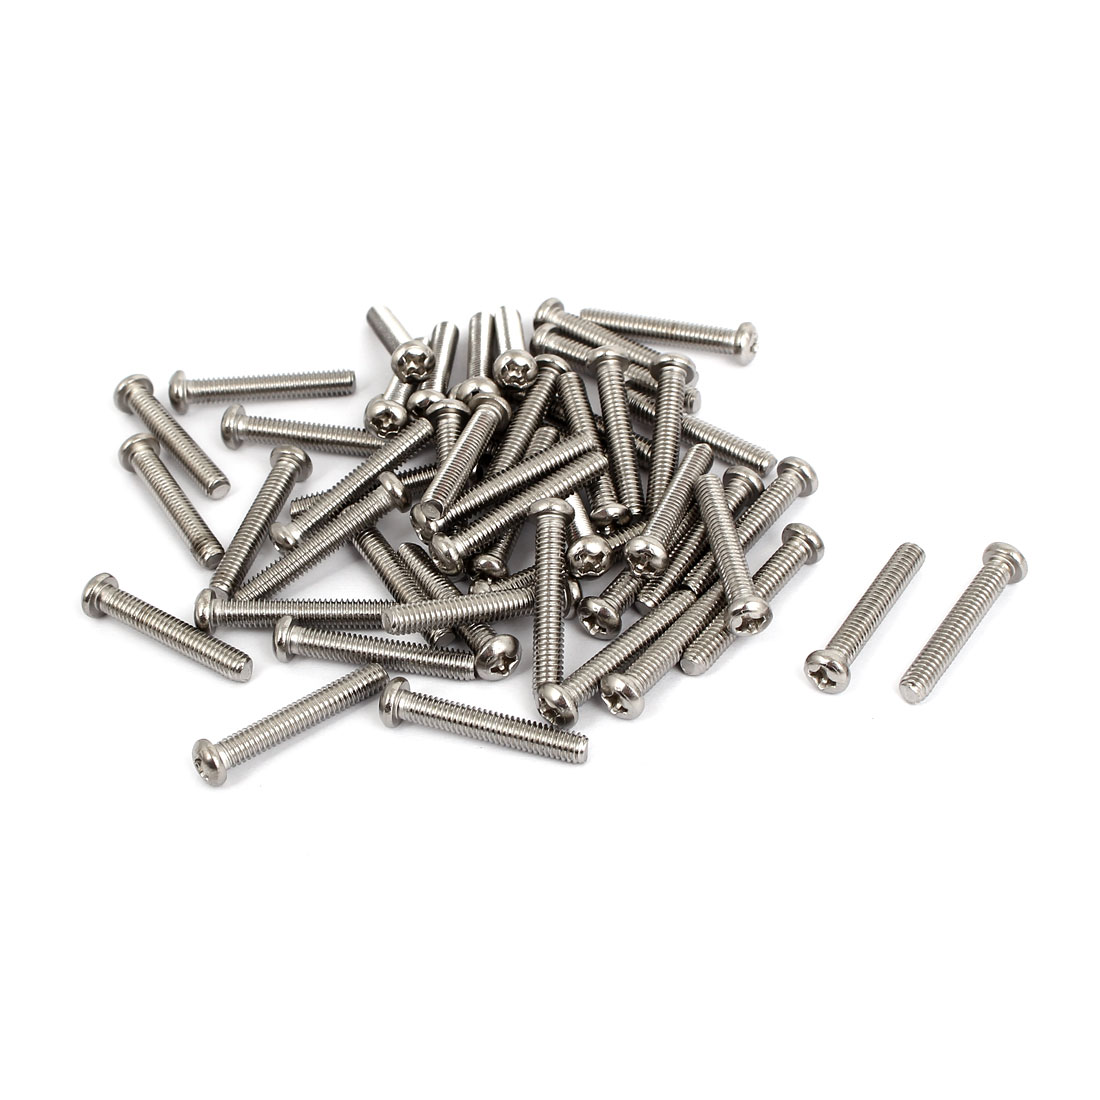 M4x25mm Stainless Steel Phillips Round Pan Head Machine Screws 50pcs